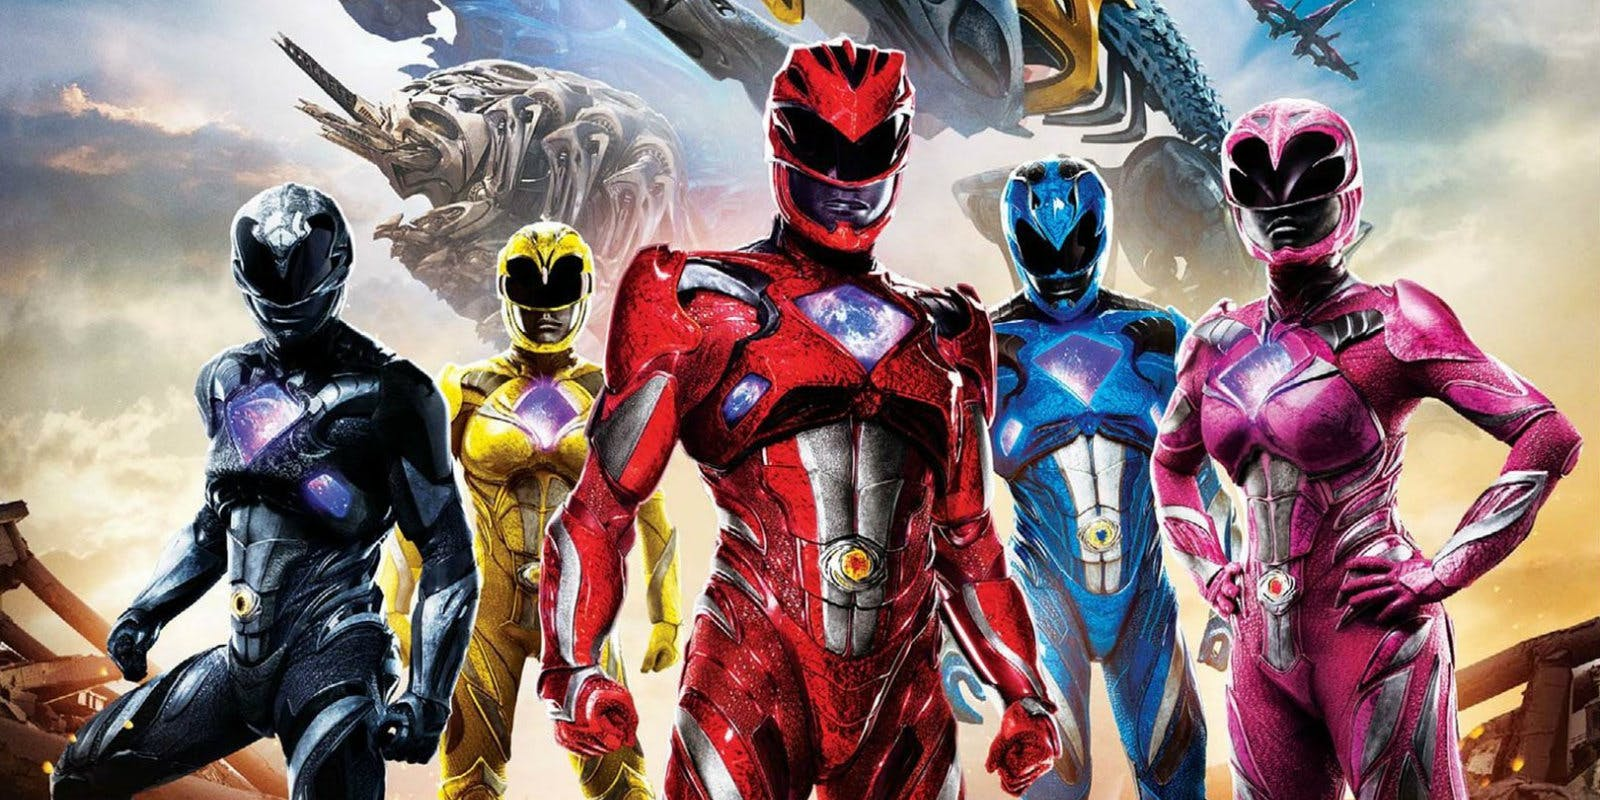 New Information About The Upcoming Power Rangers Film